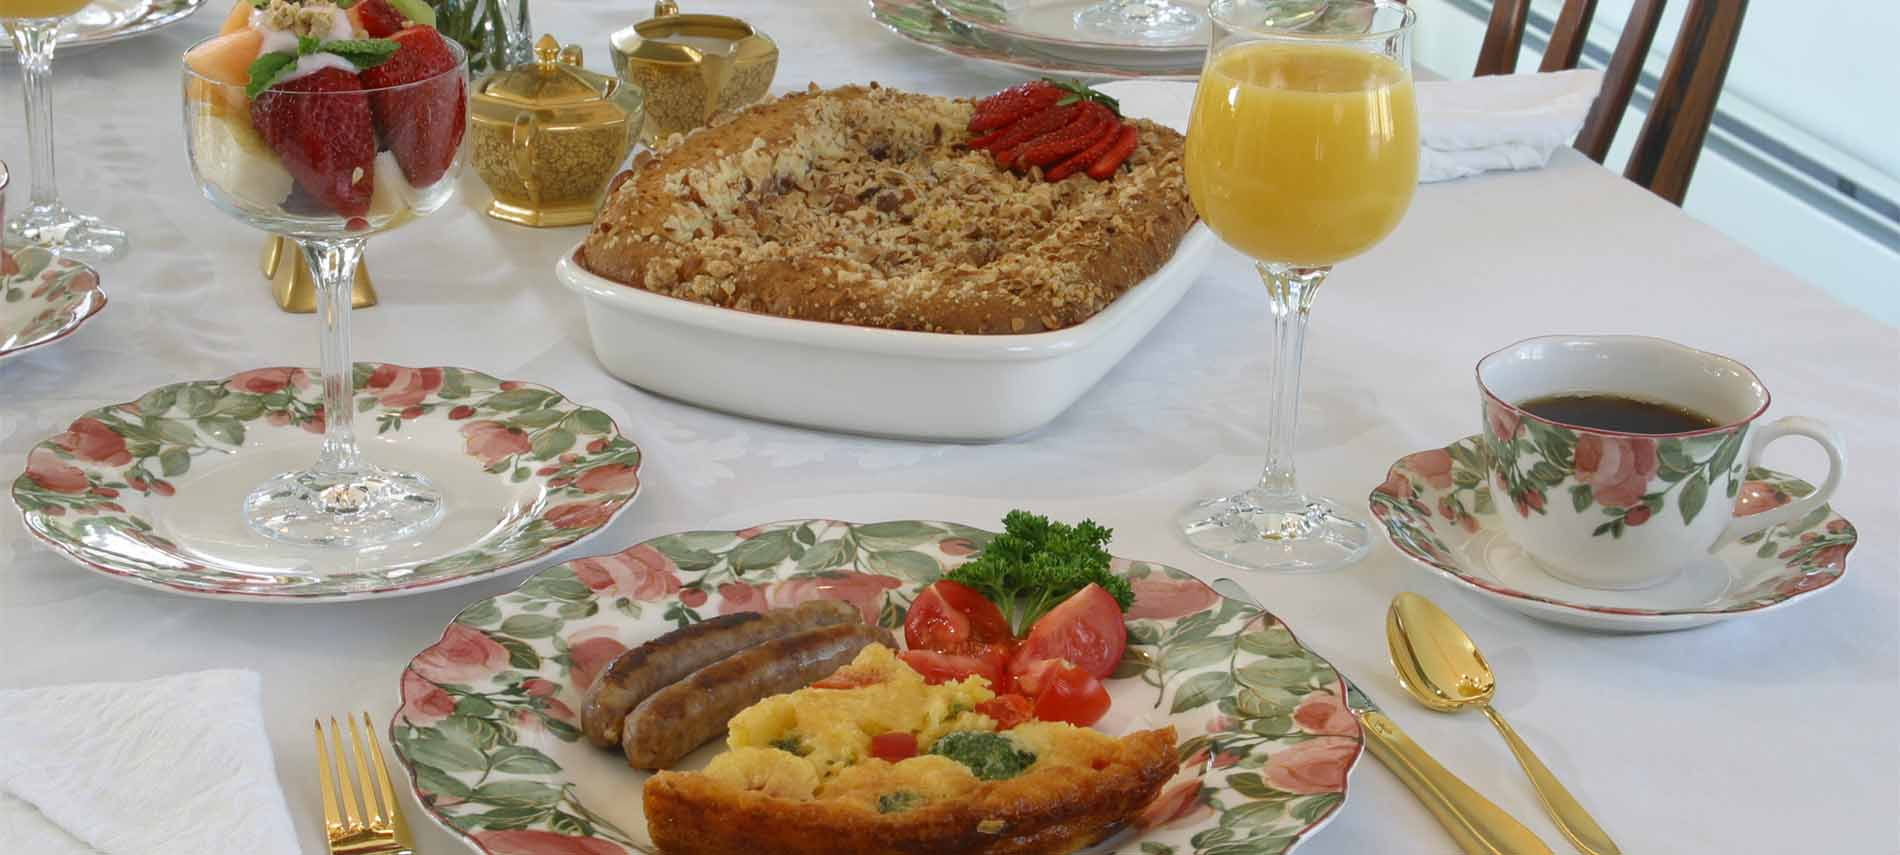 Quiche slice with sausages, tomato, parsley on plate with rose, green foliage pattern; cup of coffee; colorful fruits in goblet